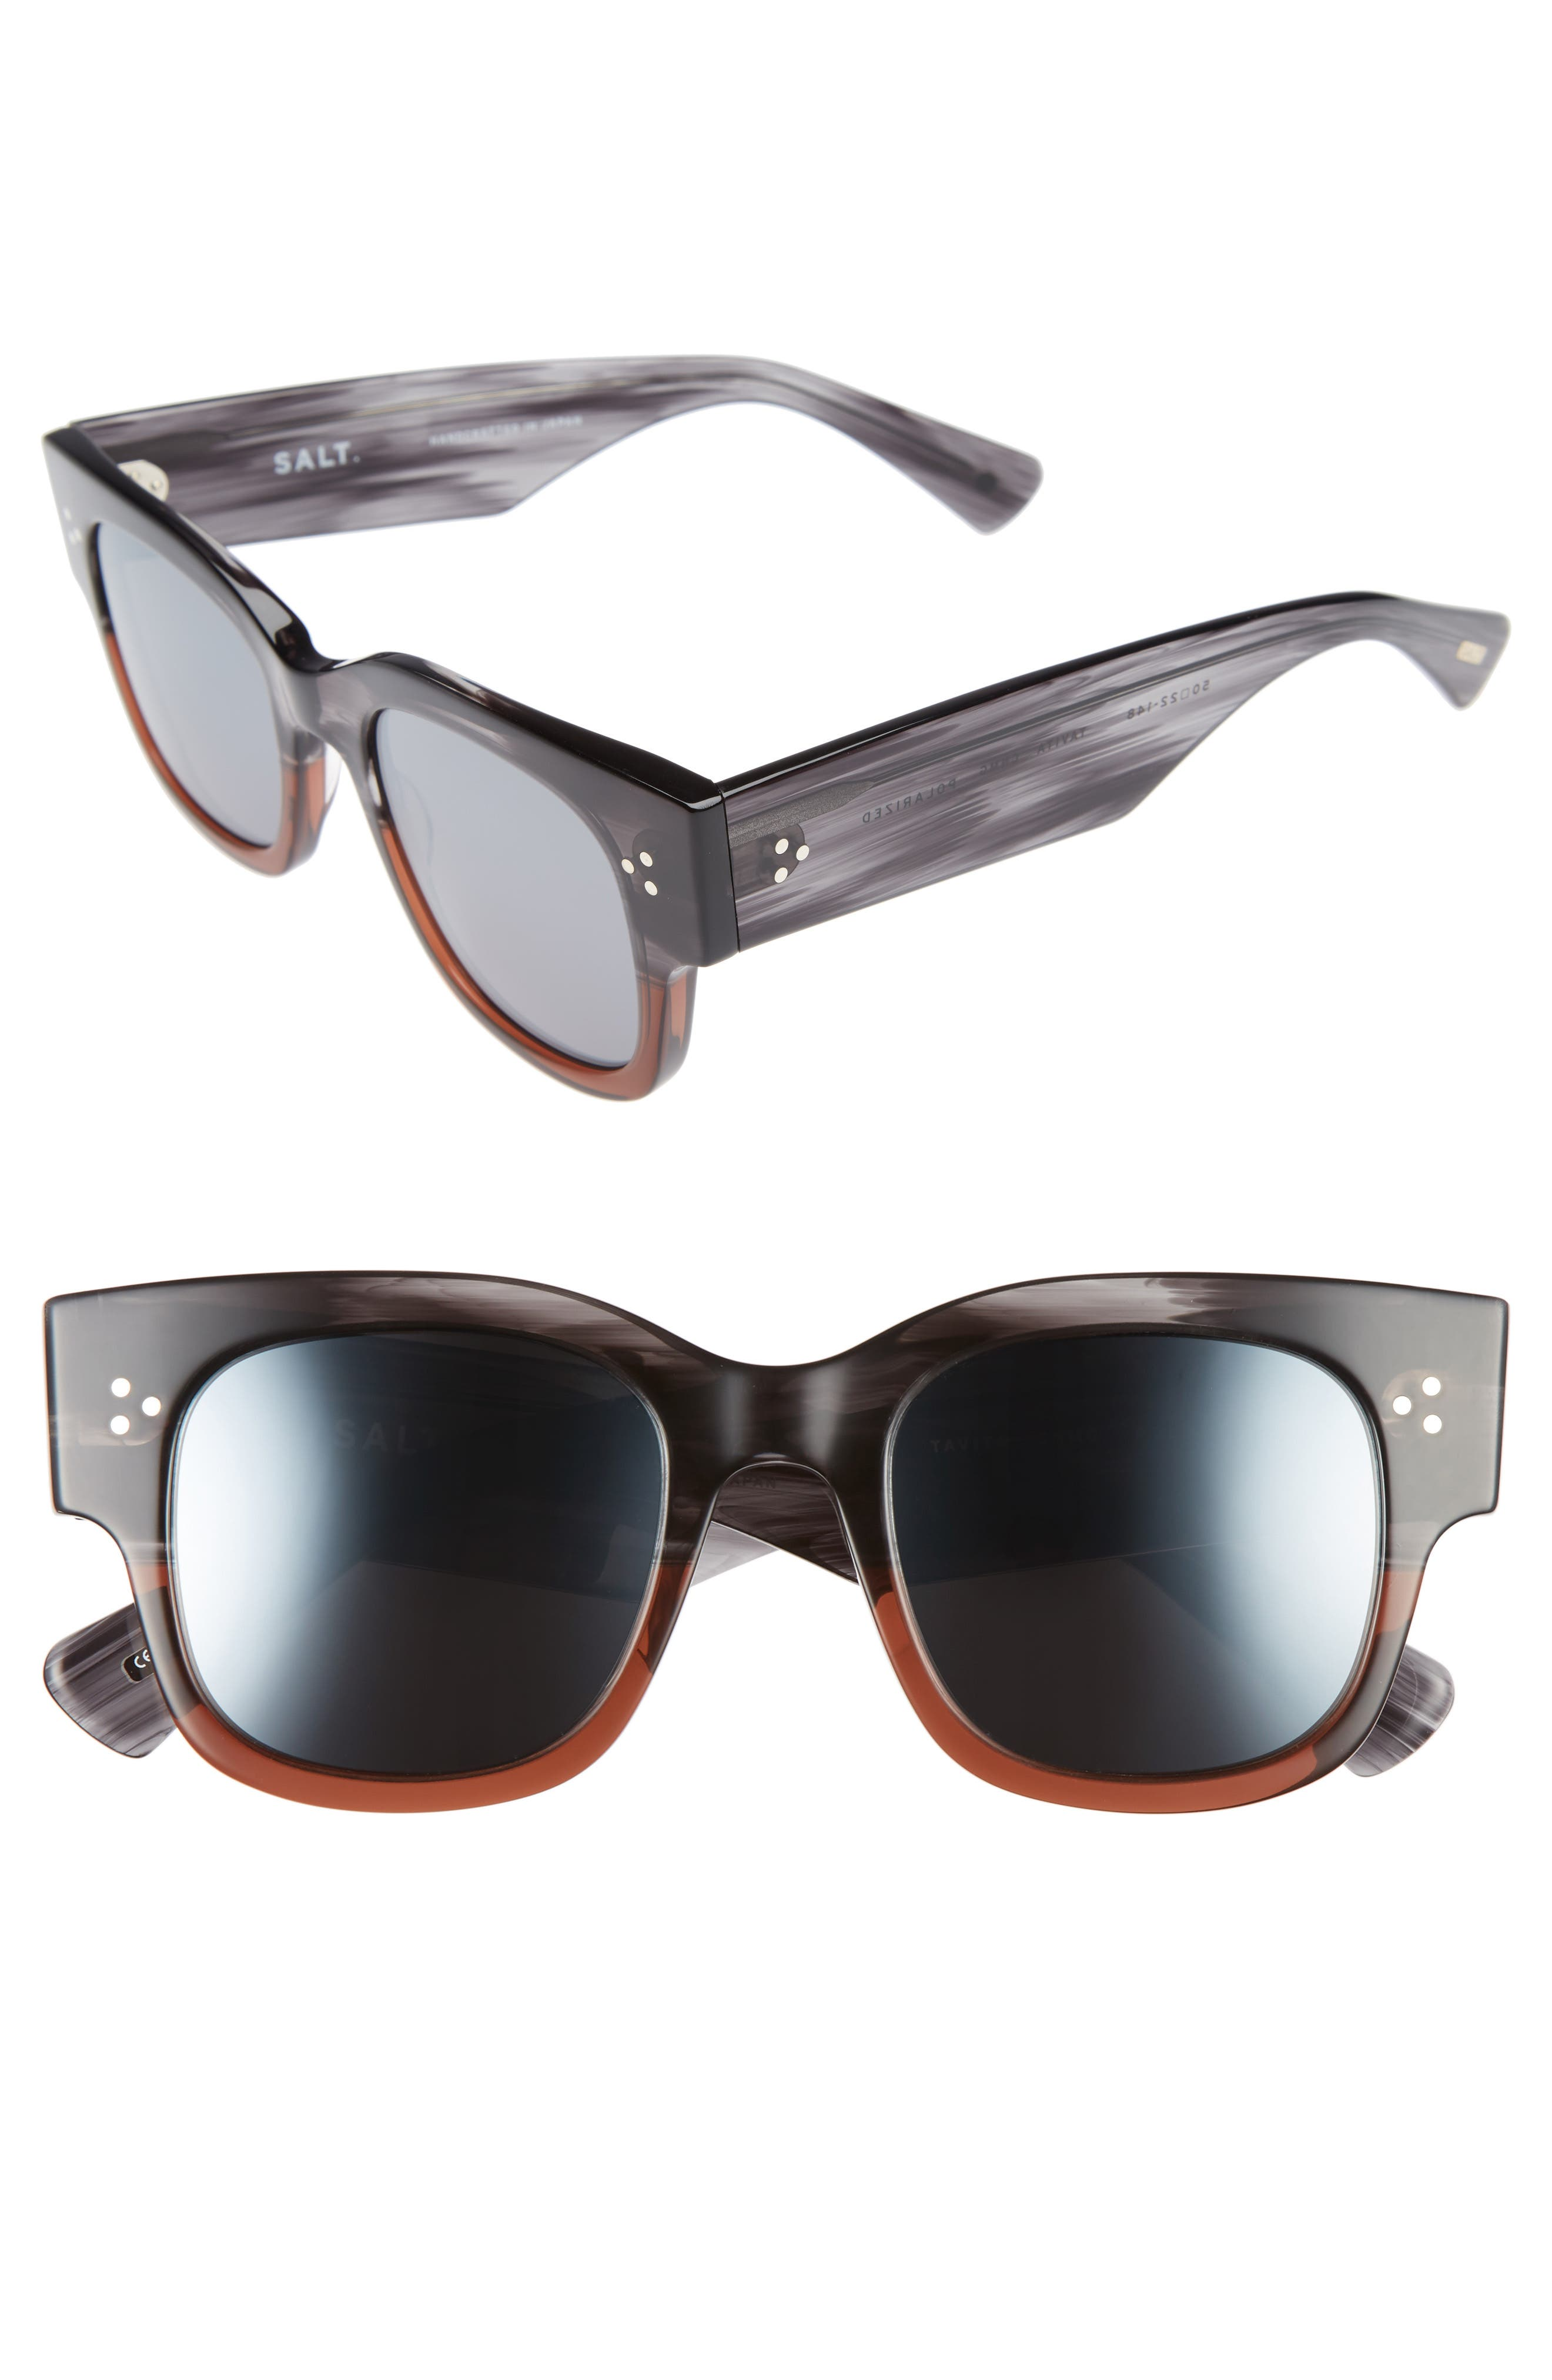 SALT Tavita 50mm Polarized Square Sunglasses